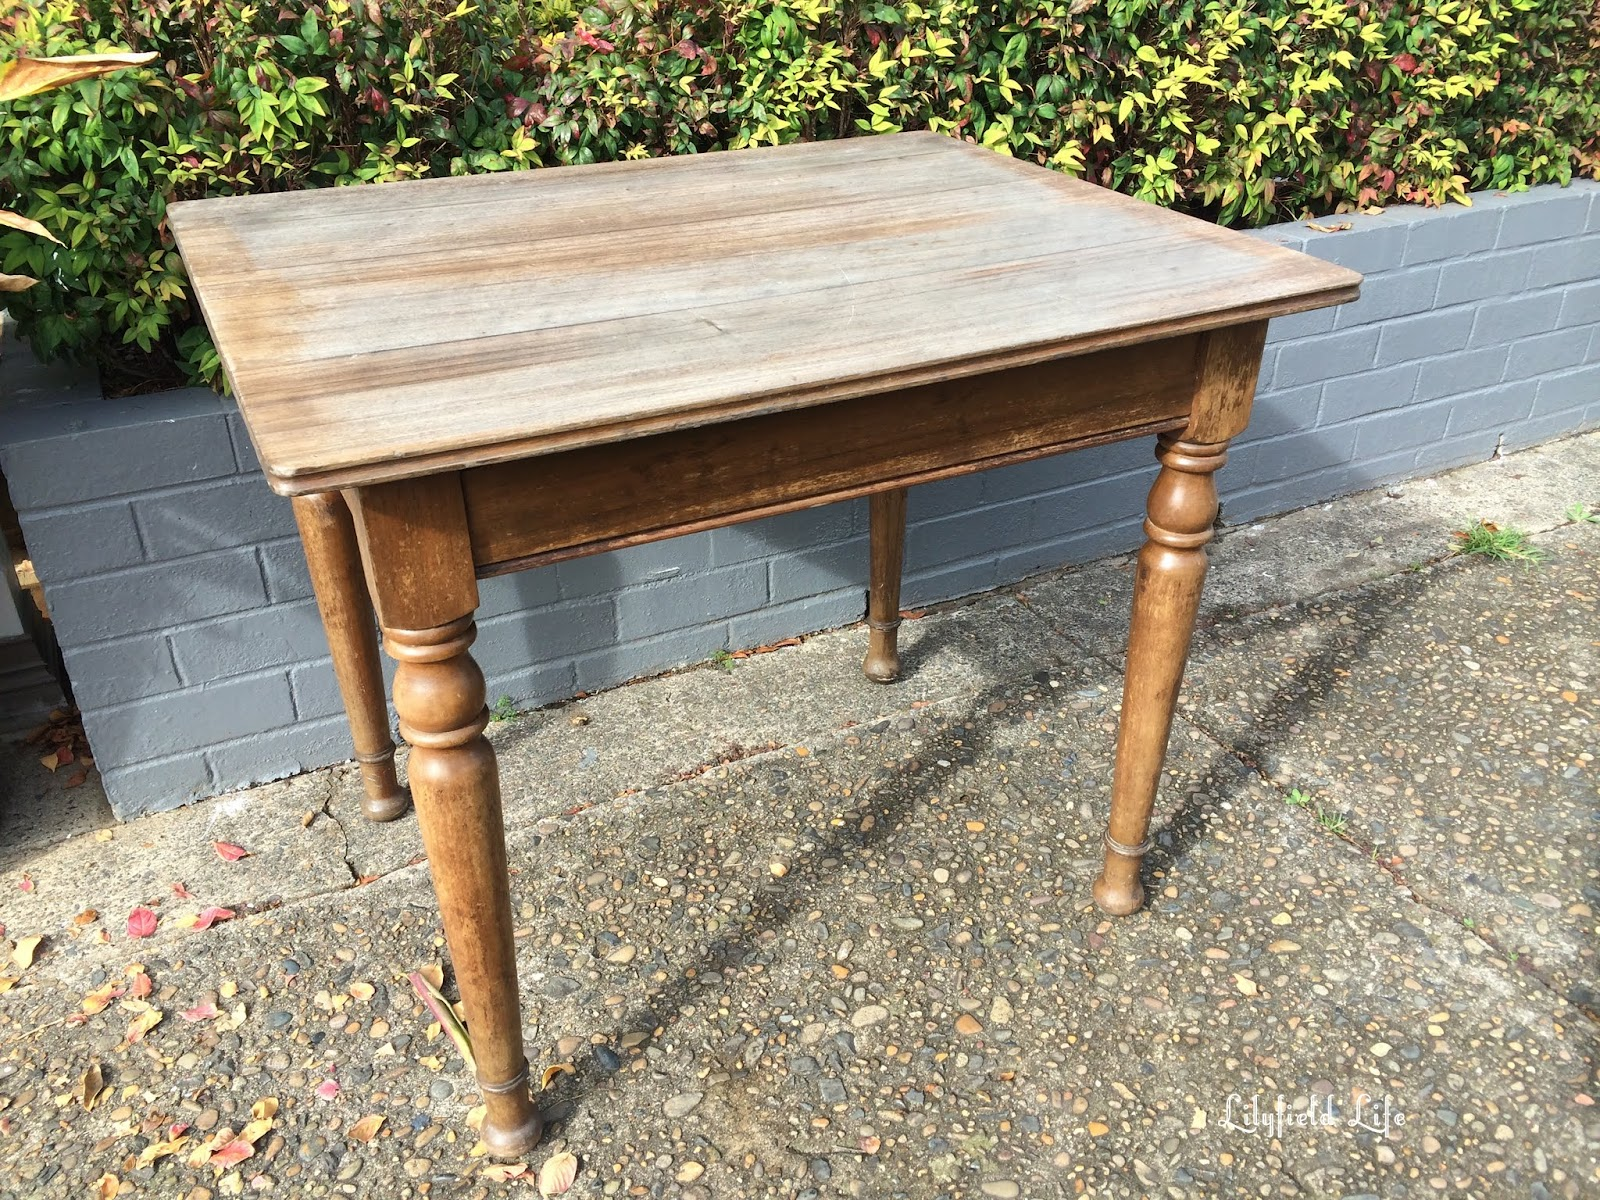 This Old Timber Table Was Particularly Dry But Solid And A Lovely Shape. I  Had A Customer Who Had Been Asking For A Small Table To Use As A Craft Table  And ...